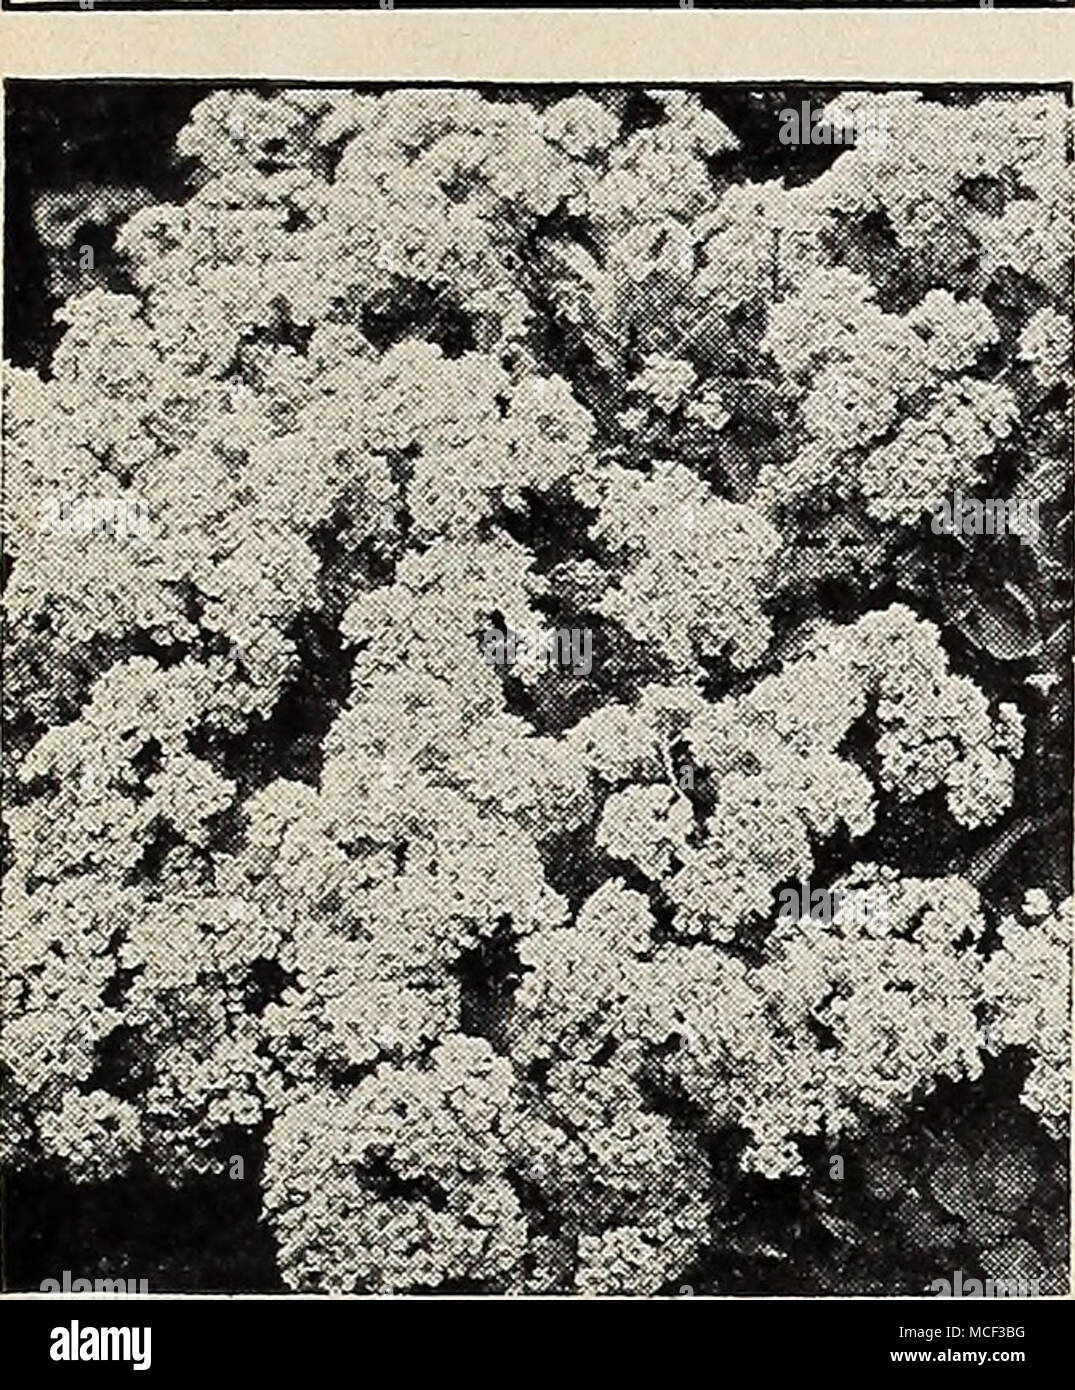 Alyssum saxatile compactum achilleamilfoil yarrow 17 001 ptarmica yarrow 17 001 ptarmica boule de neige ball of snow 1 ft showy double white flowers in july 30c each 3 for 85c 12 for 300 17 002 tometitosa izmirmasajfo